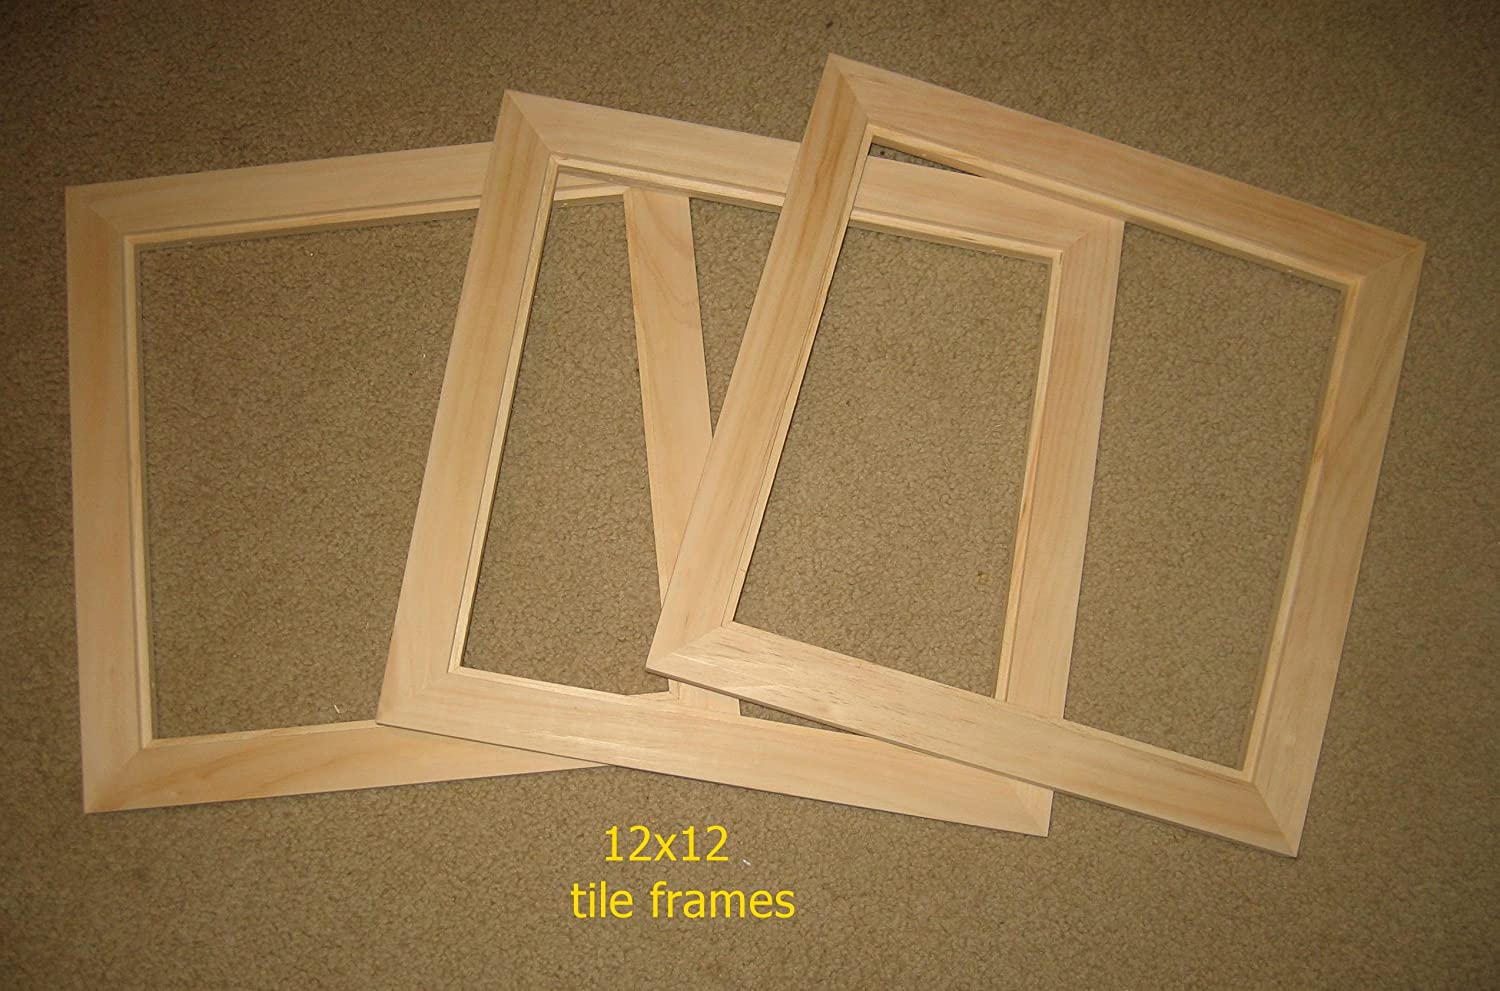 Amazon.com: Tile frames (3) - front mount - unfinished - 12x12 tiles ...